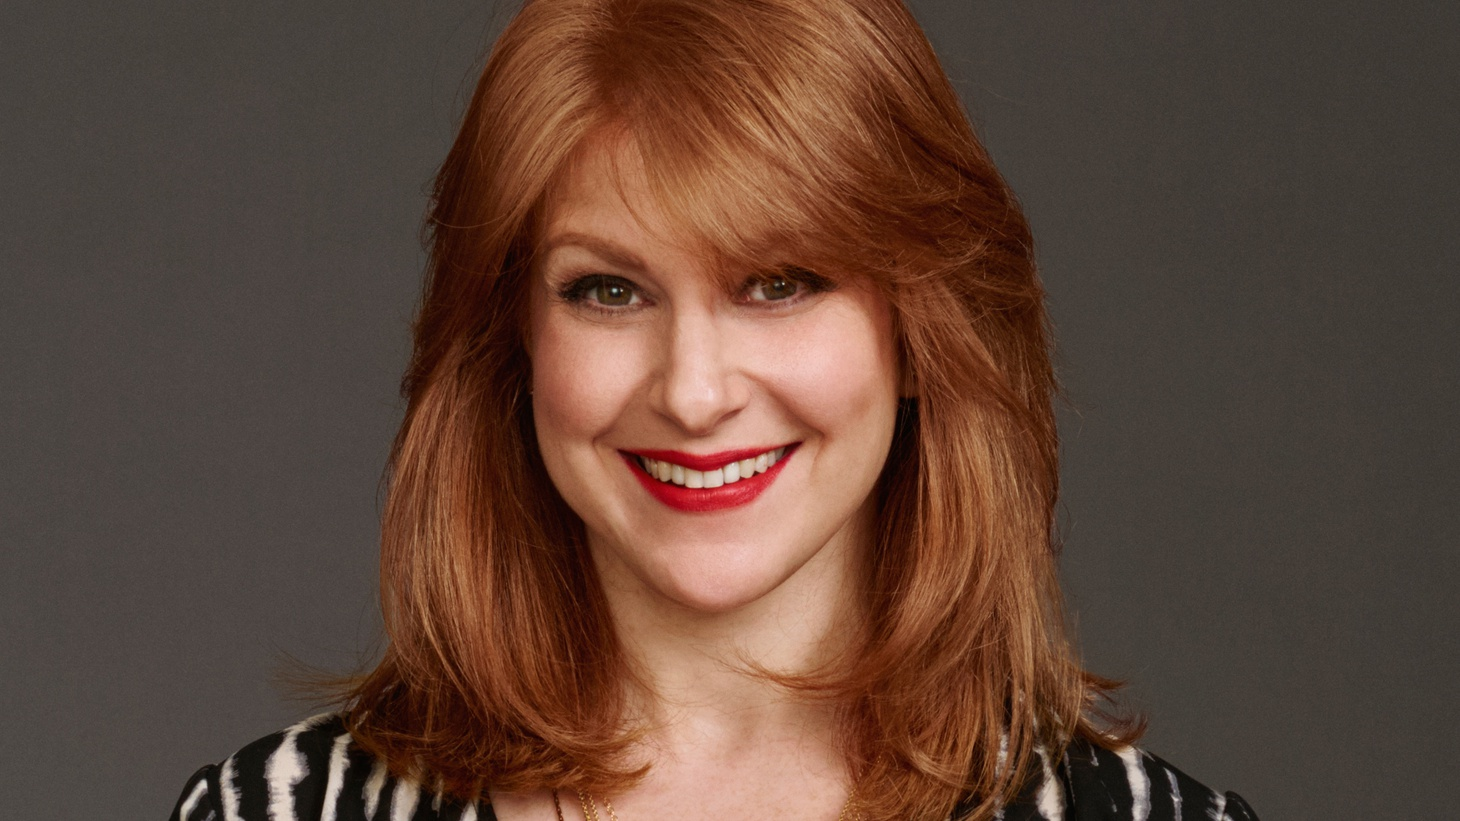 Comedian Julie Klausner is the creator and star of the Hulu comedy Difficult People. She tells us how her experience writing recaps of reality shows for Vulture informs her character on the show and why she and Billy Eichner, her friend and co-star, will never have a fight on air.